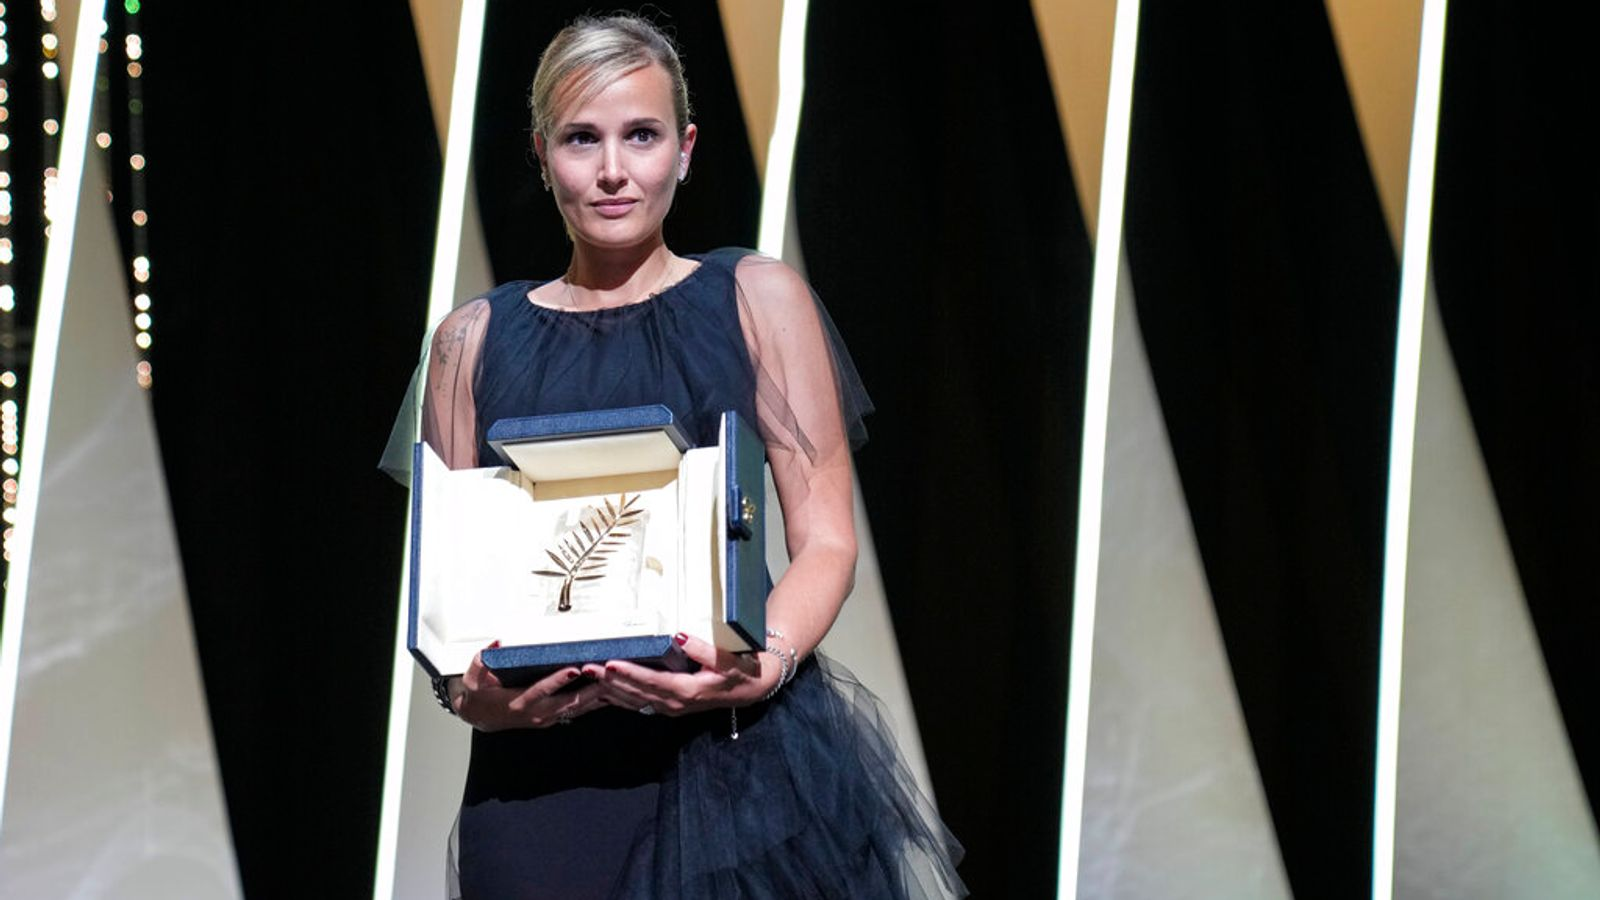 Cannes Film Festival: Palme d'Or goes to Titane – second ever win for female director